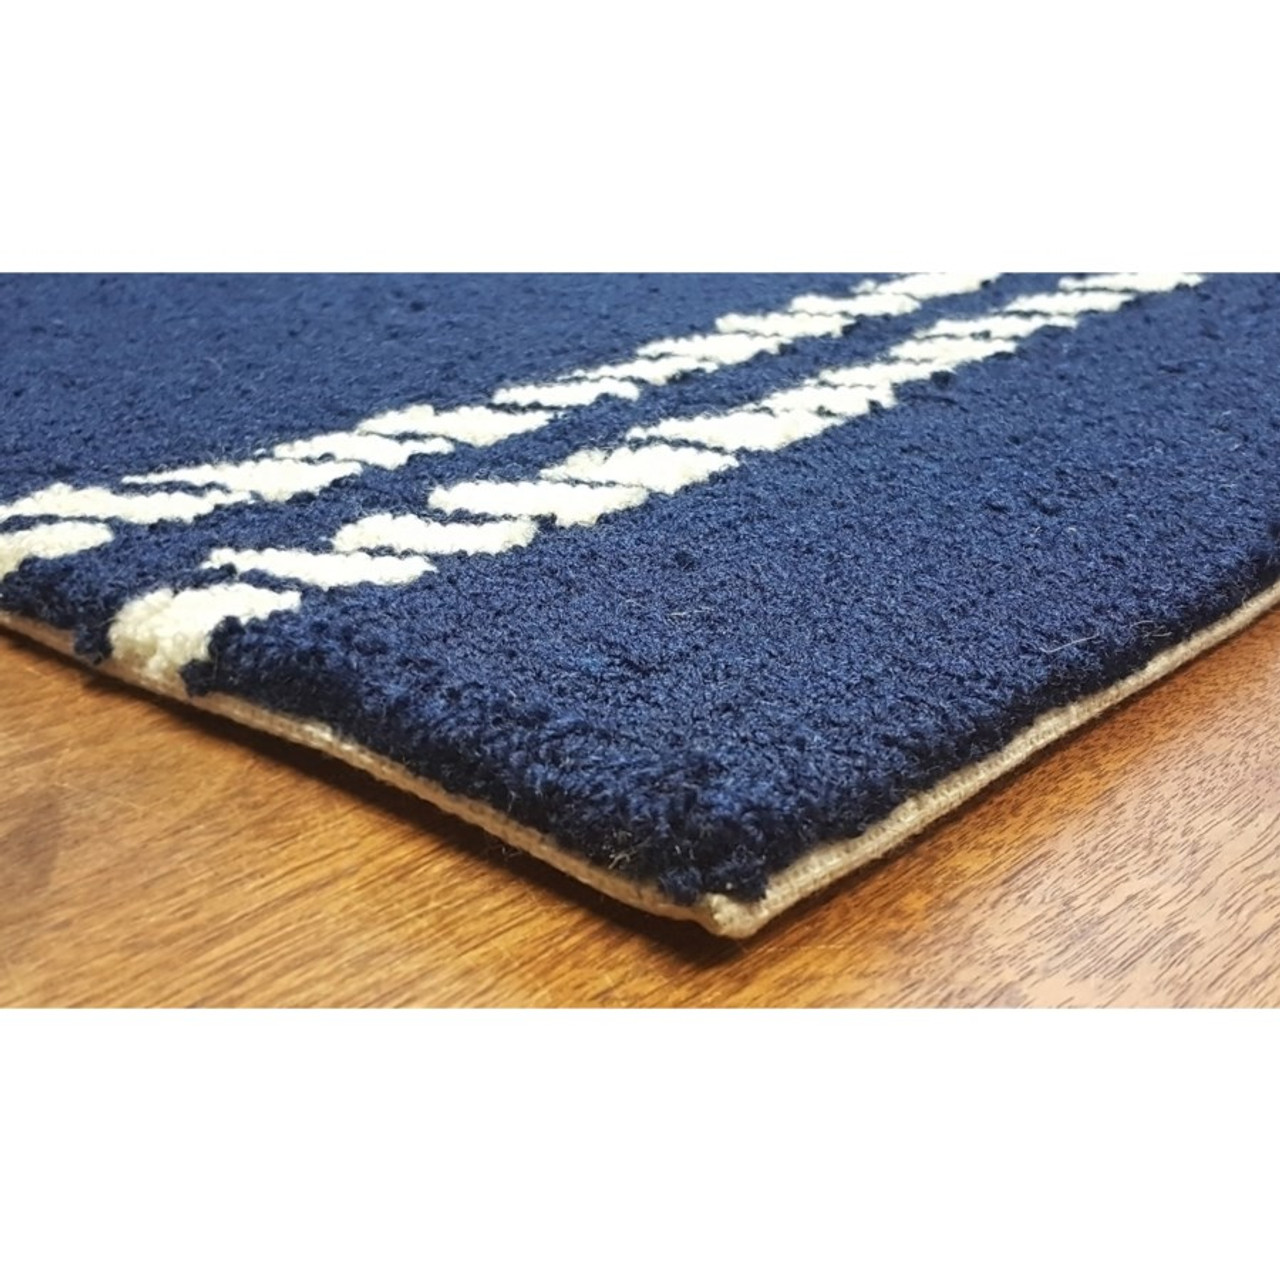 Navy Capri Nautical Ropes Indoor/Outdoor Rug - Pile